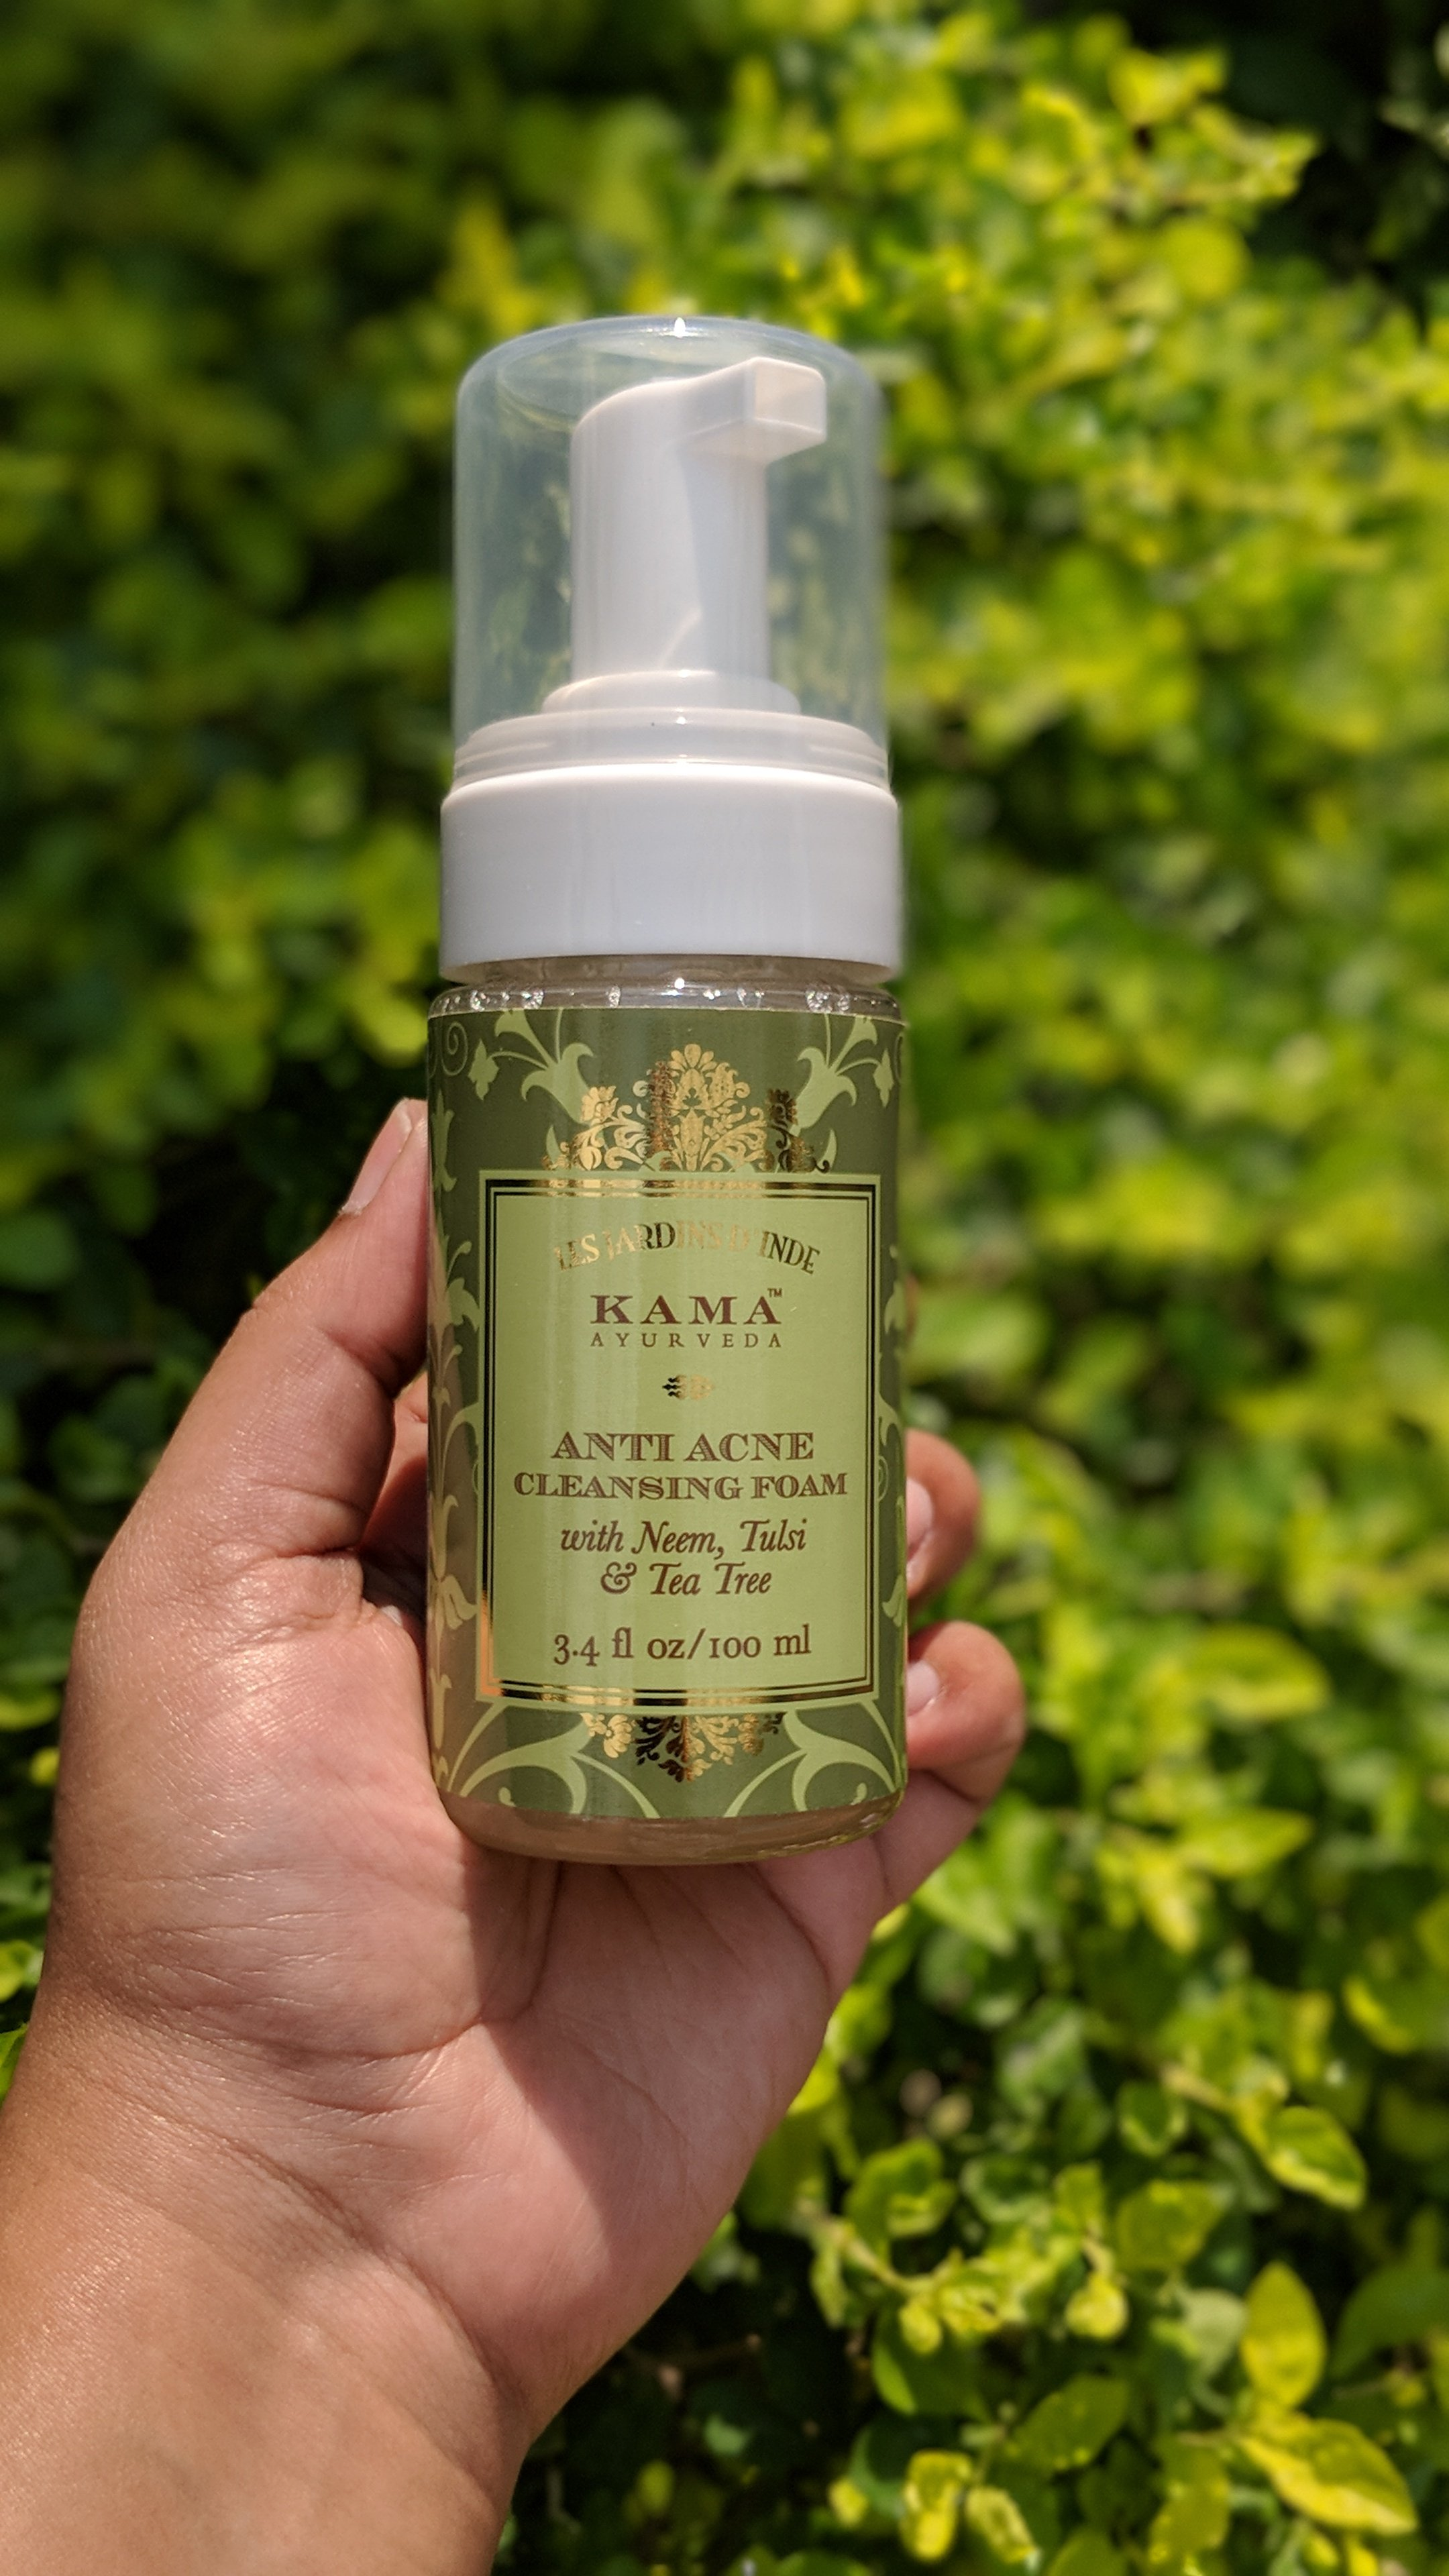 Kama Ayurveda Anti Acne Cleansing Foam